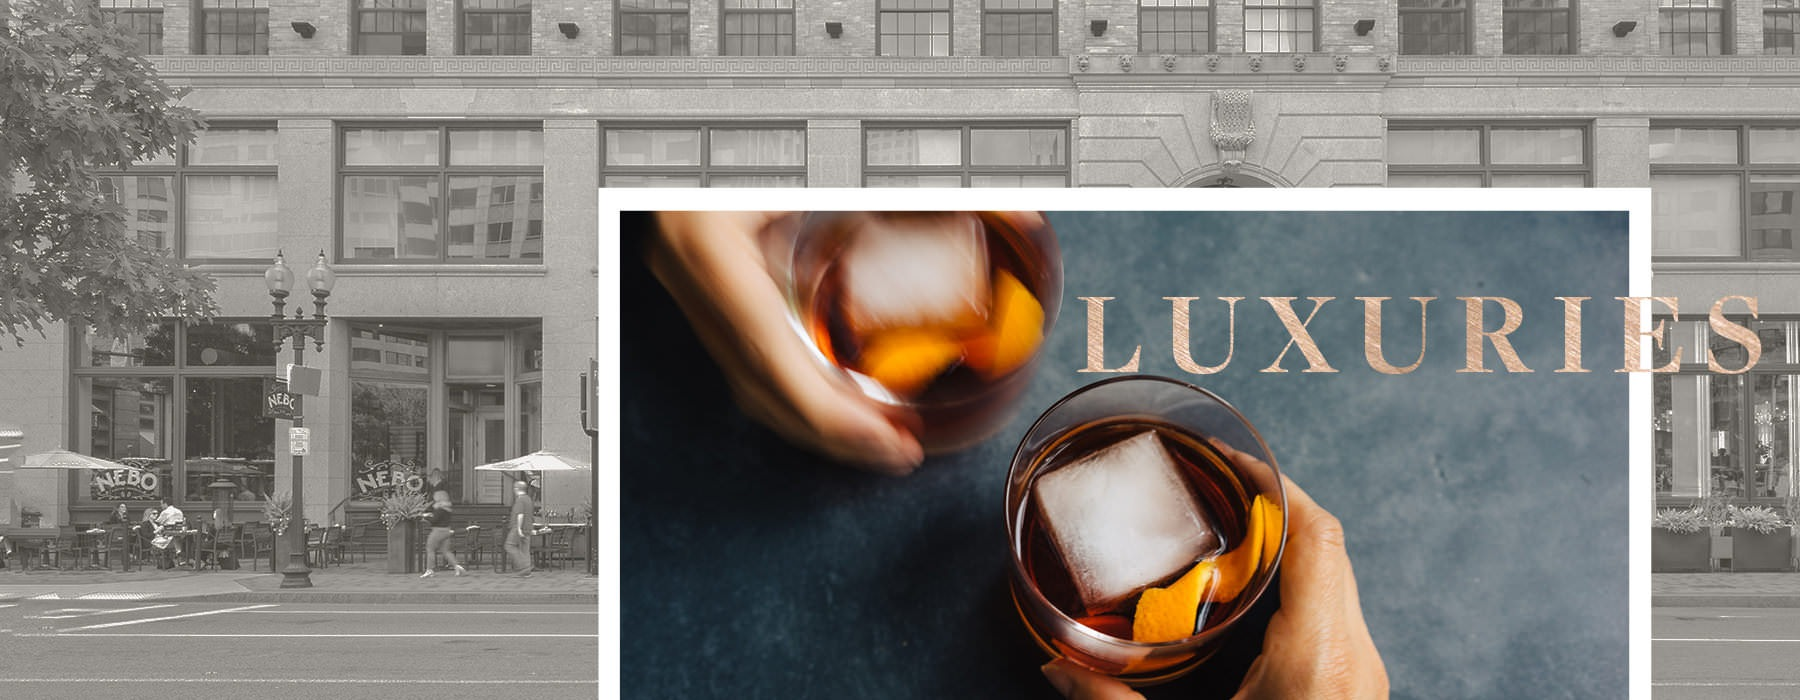 Luxuries graphic with apartment exterior, title and glasses of iced liquor